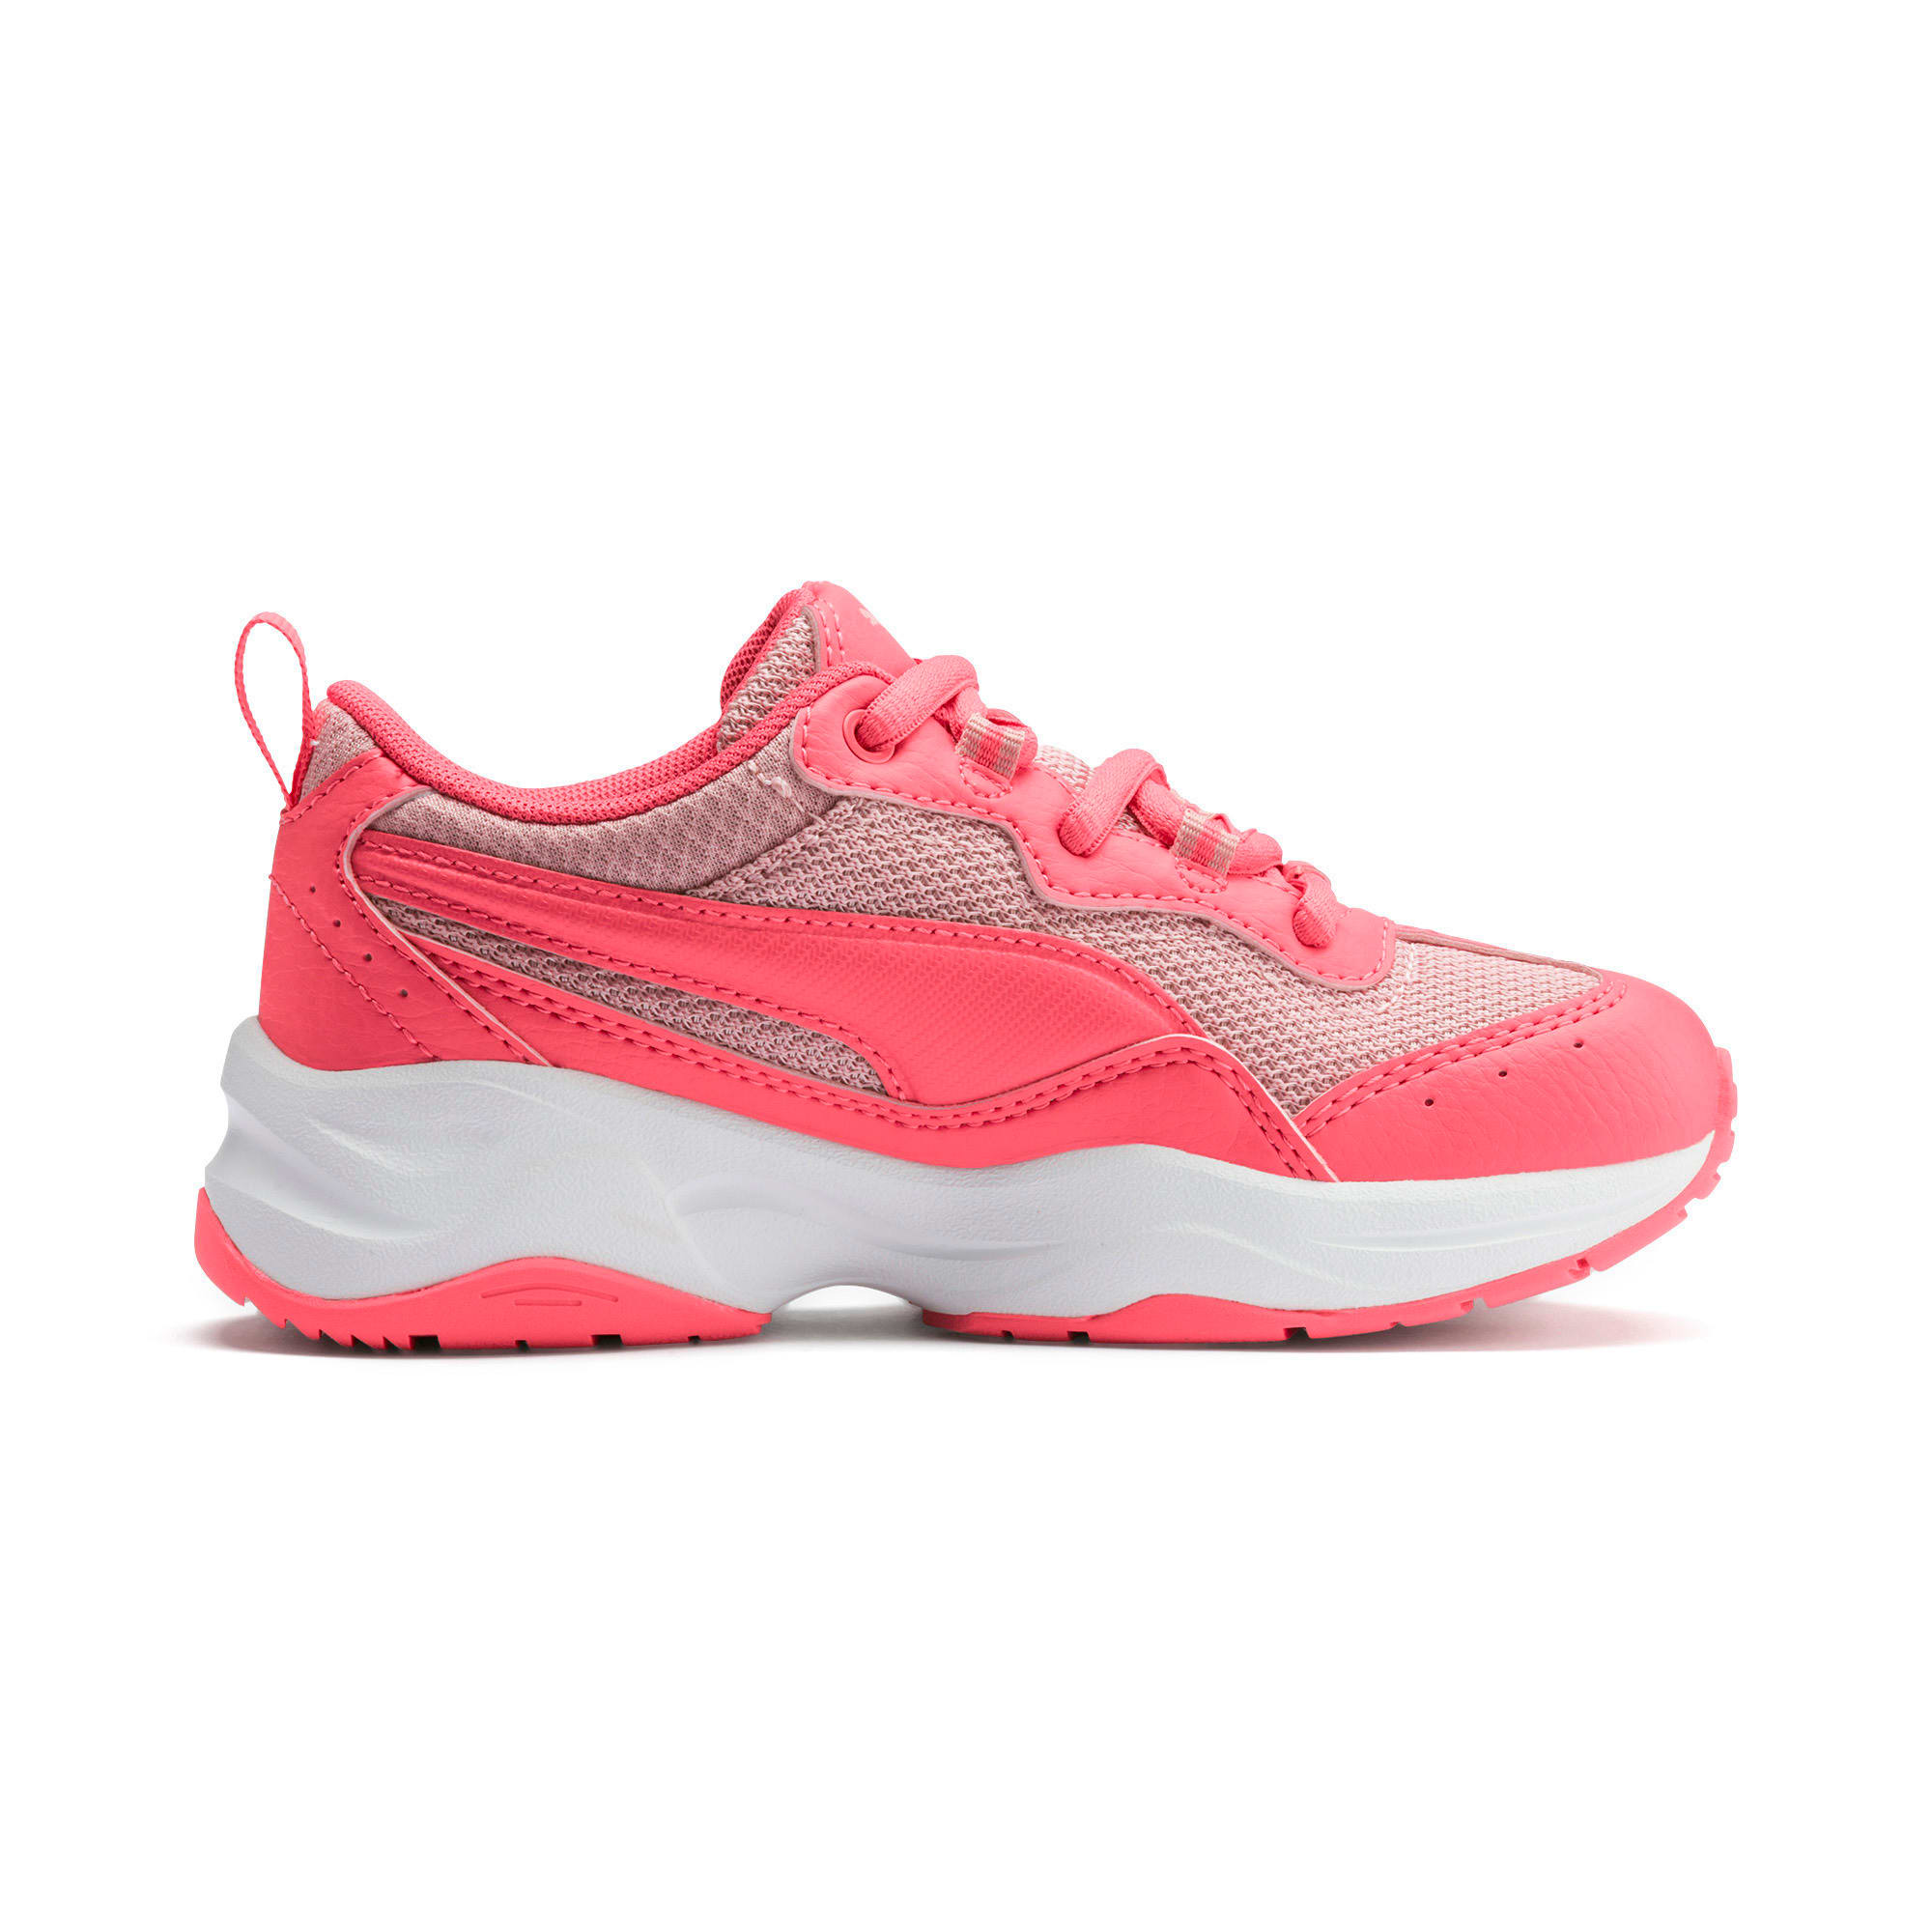 Thumbnail 5 of Cilia Kids' Trainers, Calypso Coral-B Rose-White, medium-IND